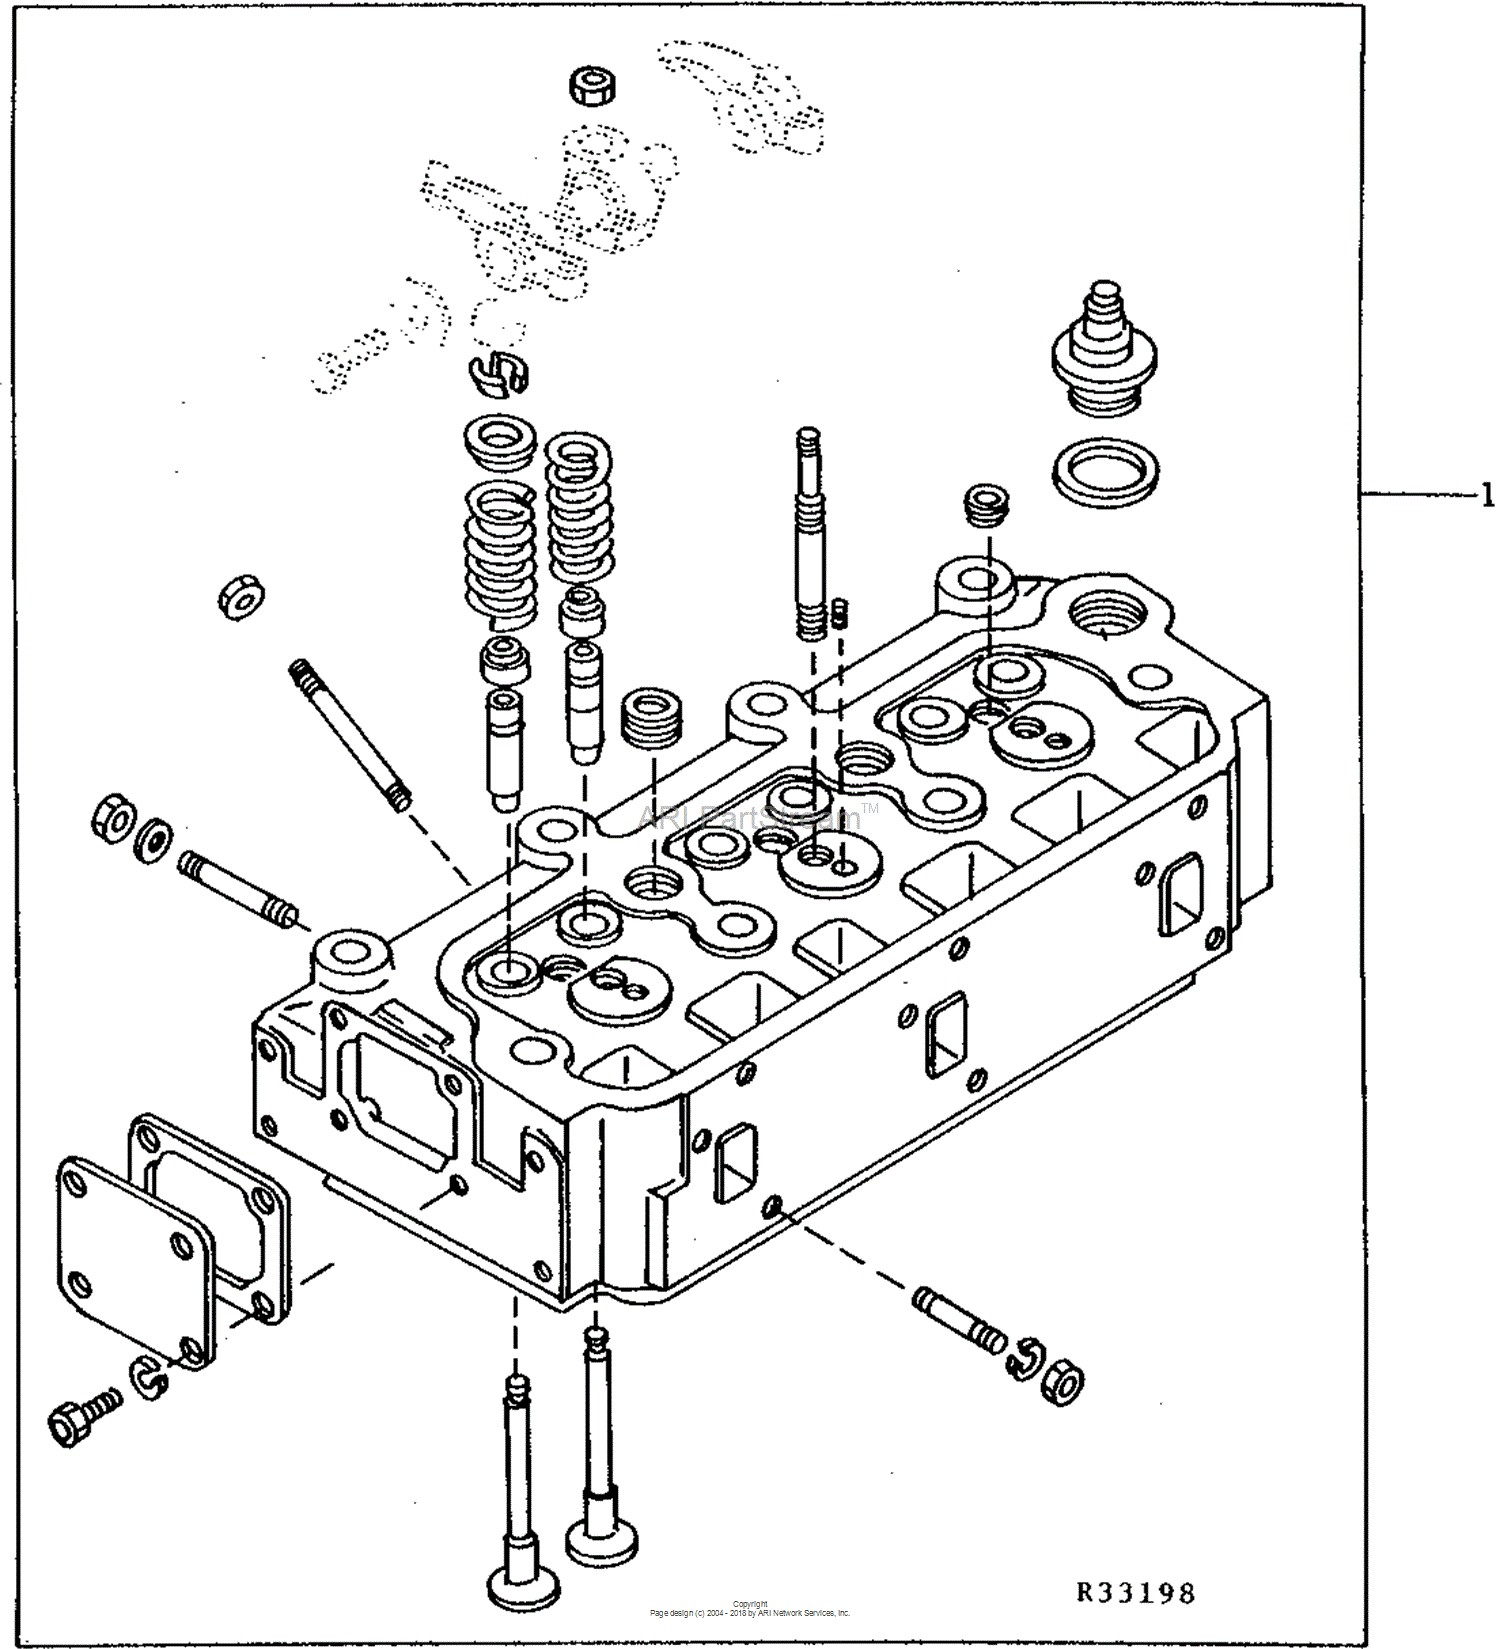 [DIAGRAM_38IS]  5915 Tractor Engine Diagram John Deere Parts Diagrams John Deere 850 ... |  Wiring Library | John Deere Tractor Engine Diagrams |  | Wiring Library